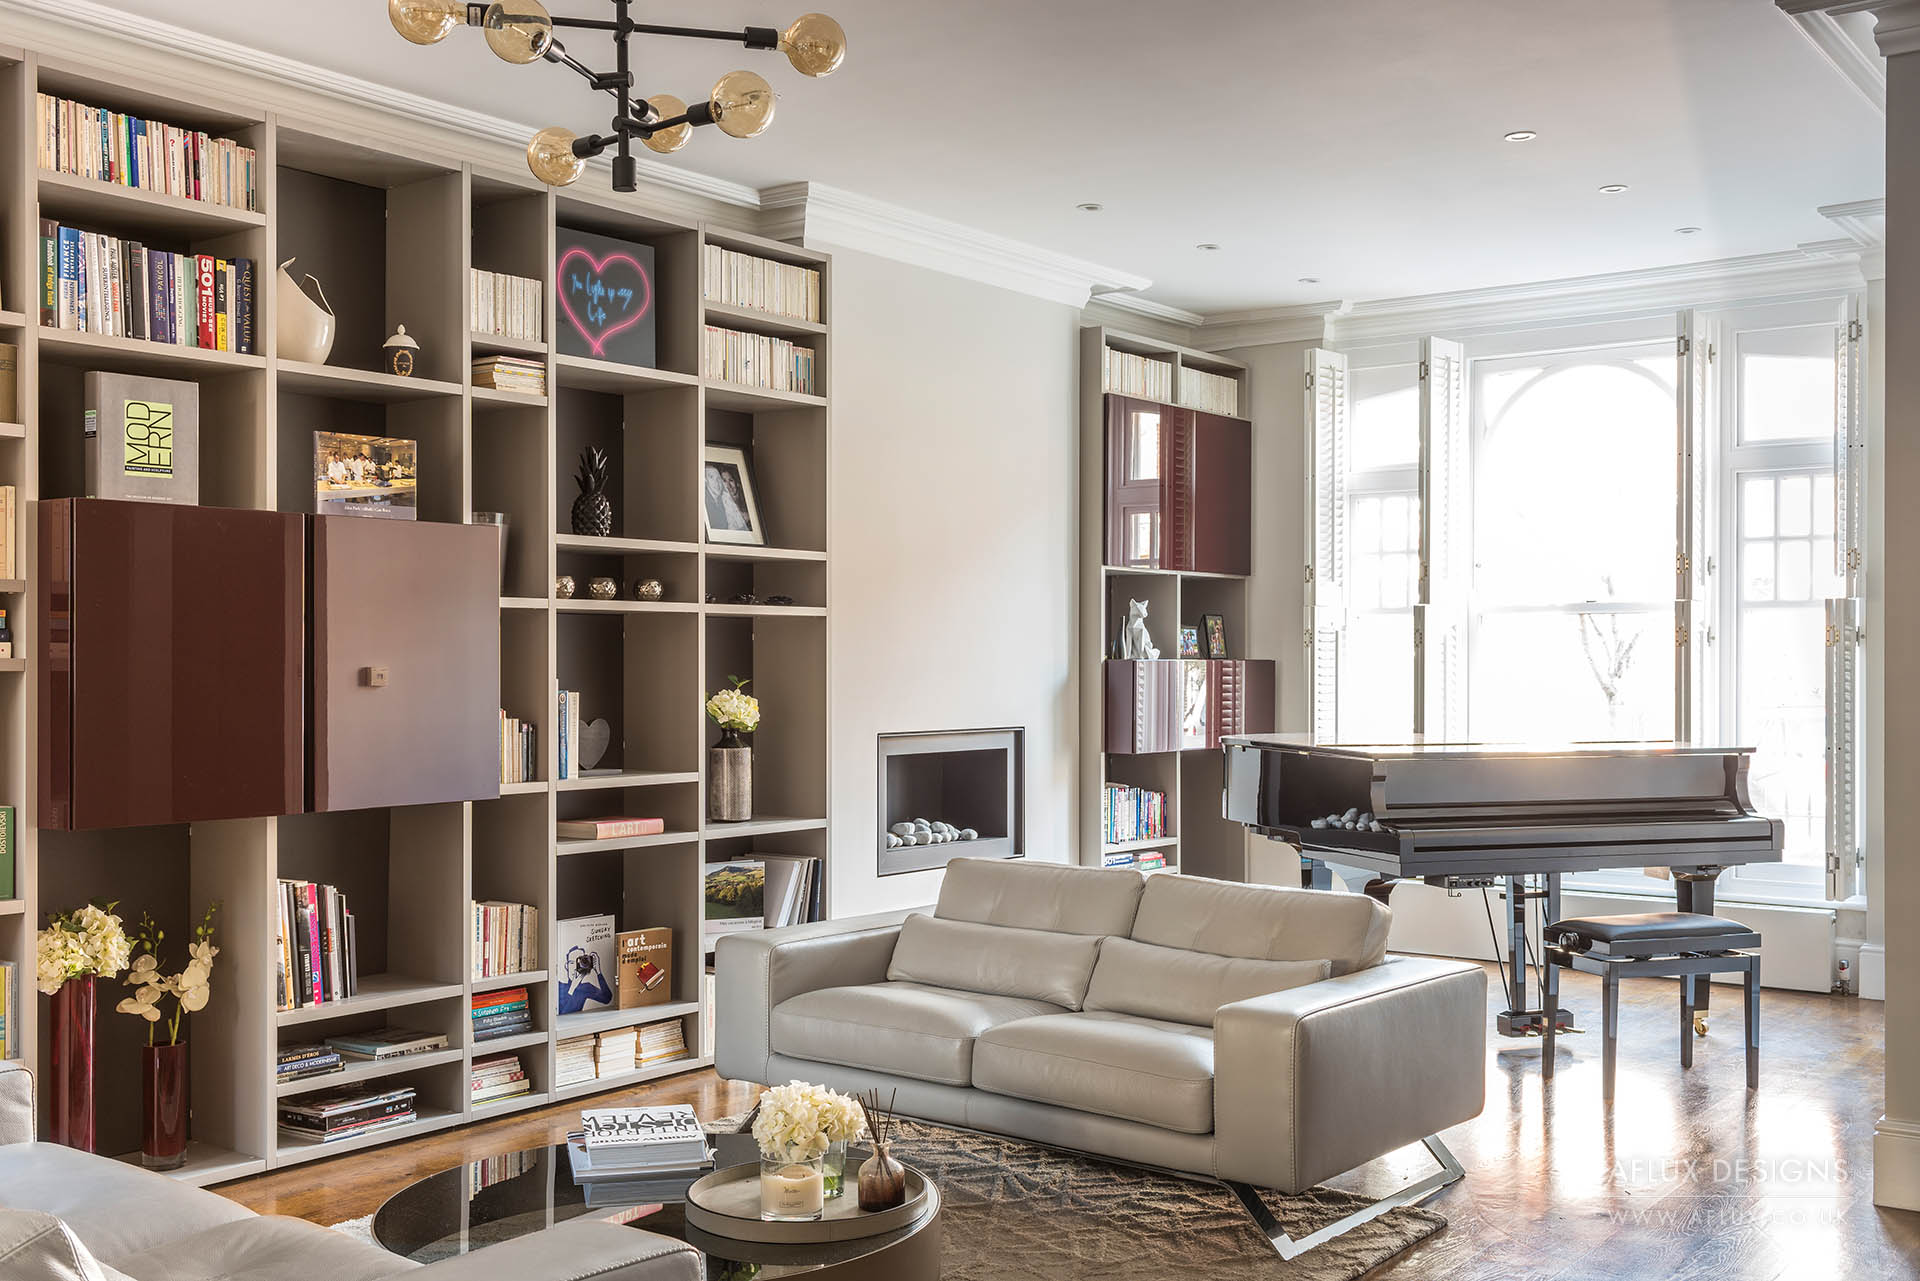 Fulham - LONDON SW6A large family house tastefully designed to the taste of our clients including a large inside/out extension with floor to ceiling sliding doors and a new designed Italian kitchen (and a colourful play area for the kids).